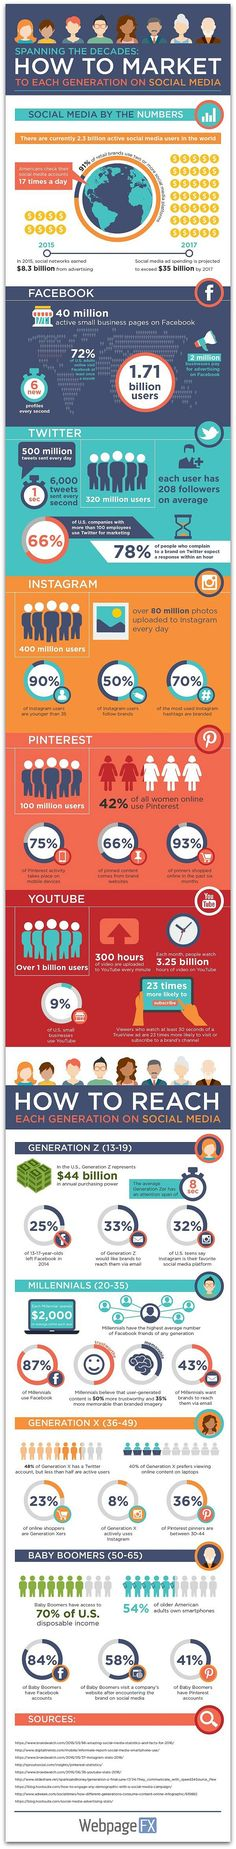 Infographic: How to reach each generation on social media | Articles | Home